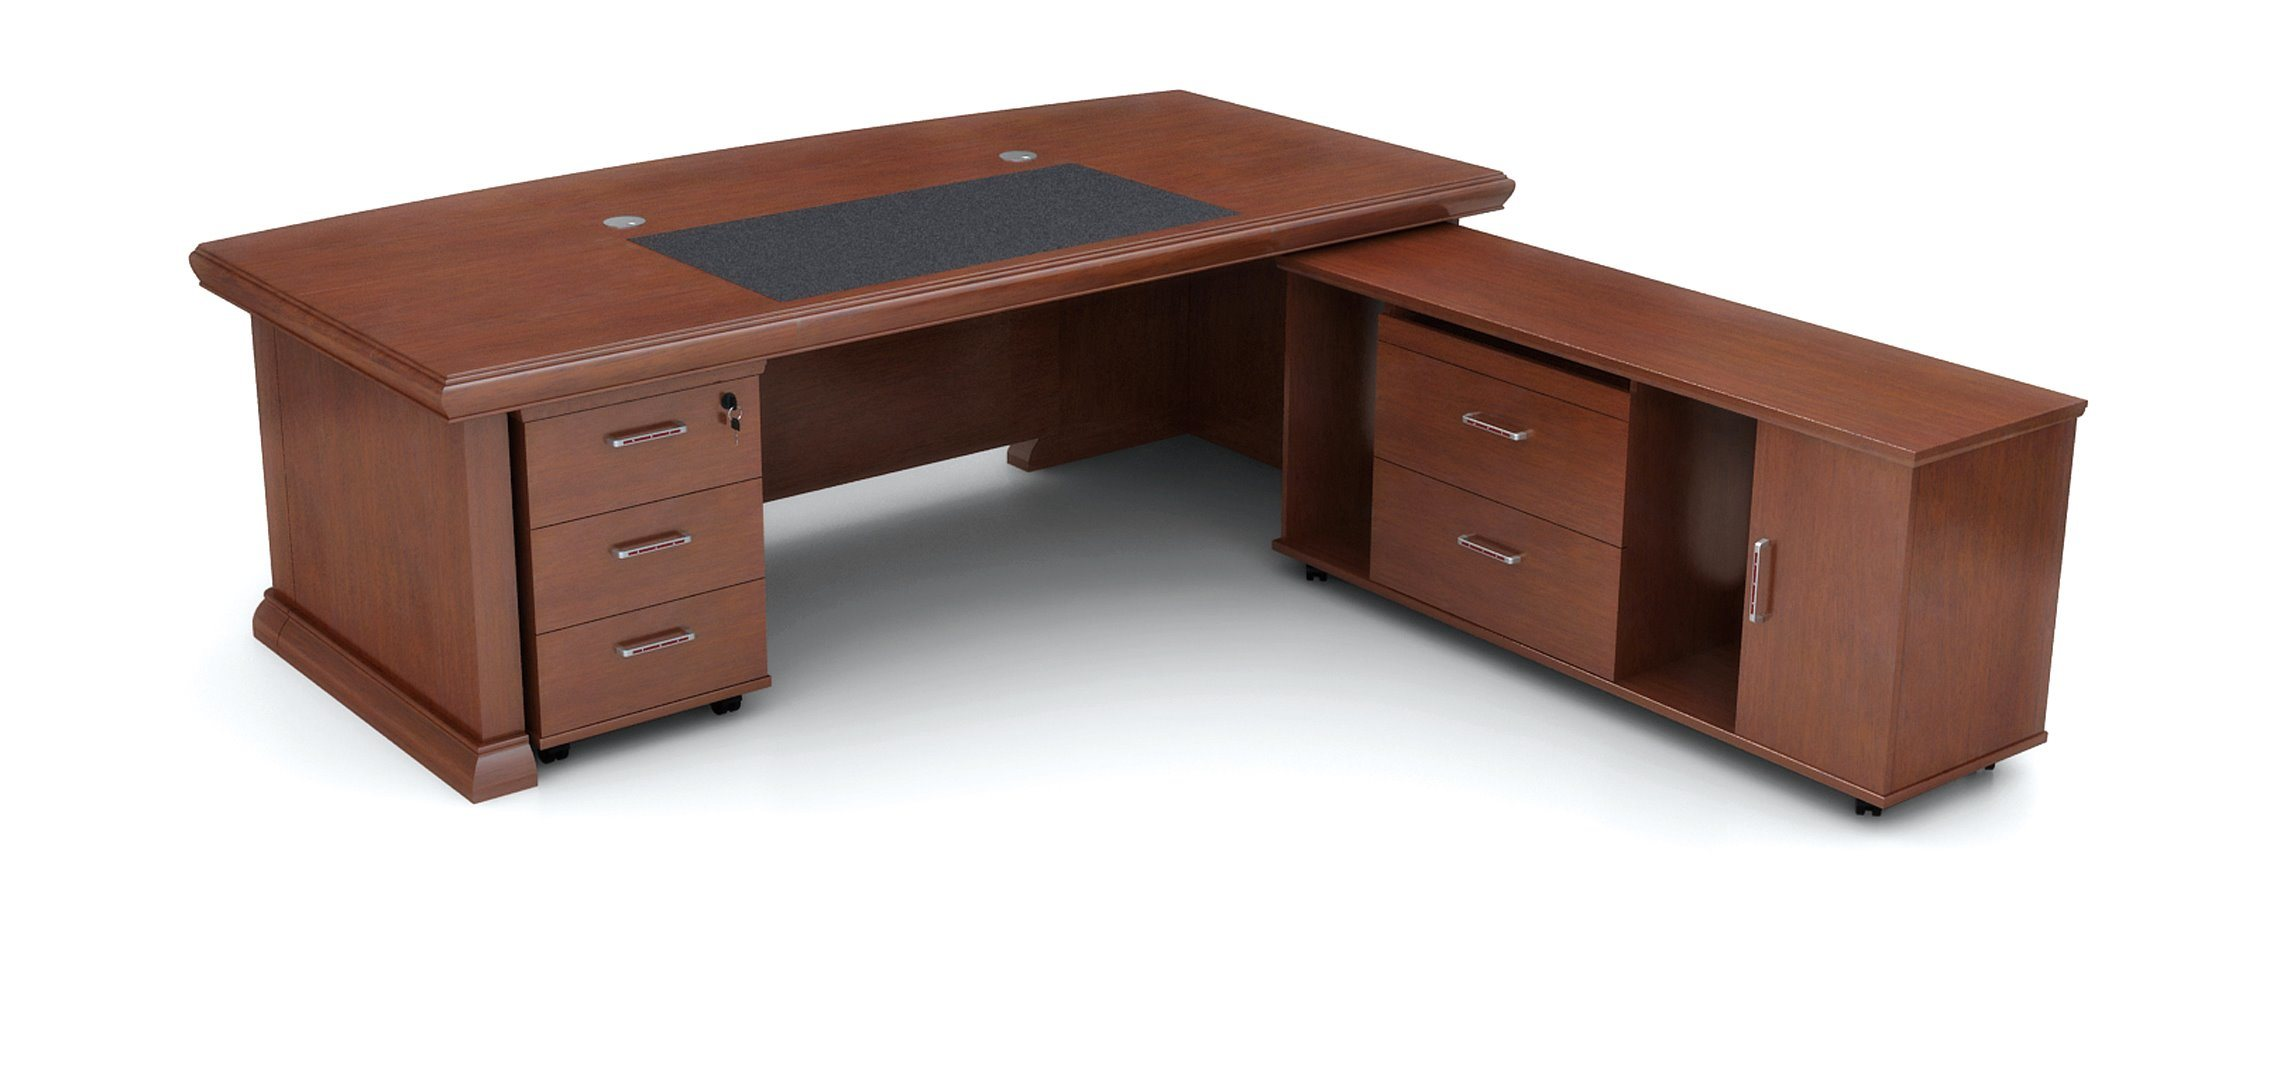 China Wood Office Furniture Executive Desk Director Computer For Boss Table